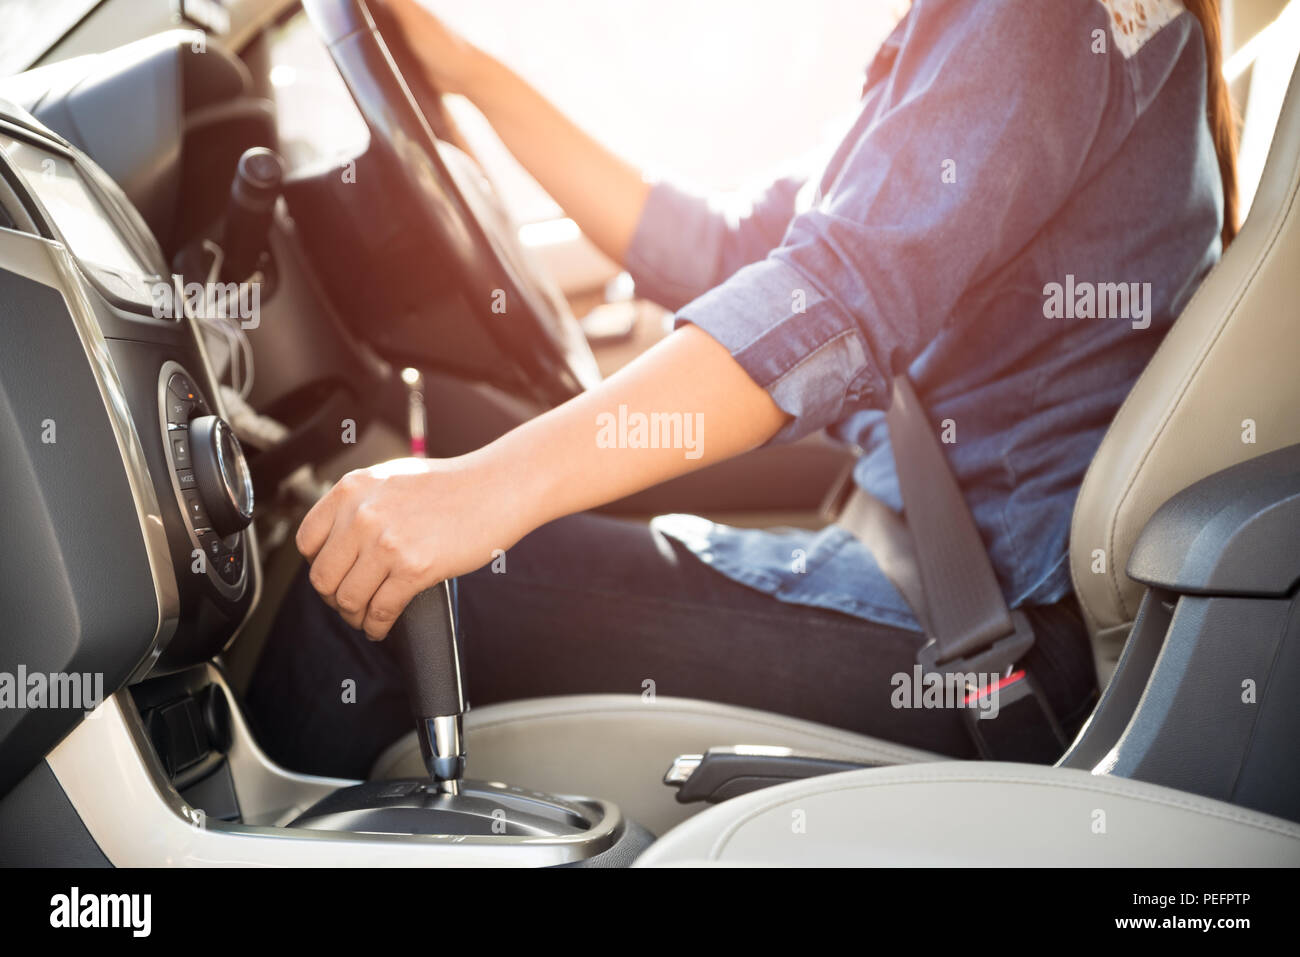 Automatic Car Gear Box Stock Photos Stick Shift Shifting Gears Illustration Diagram Woman Driver Hand Or Changing The And Driving A Image